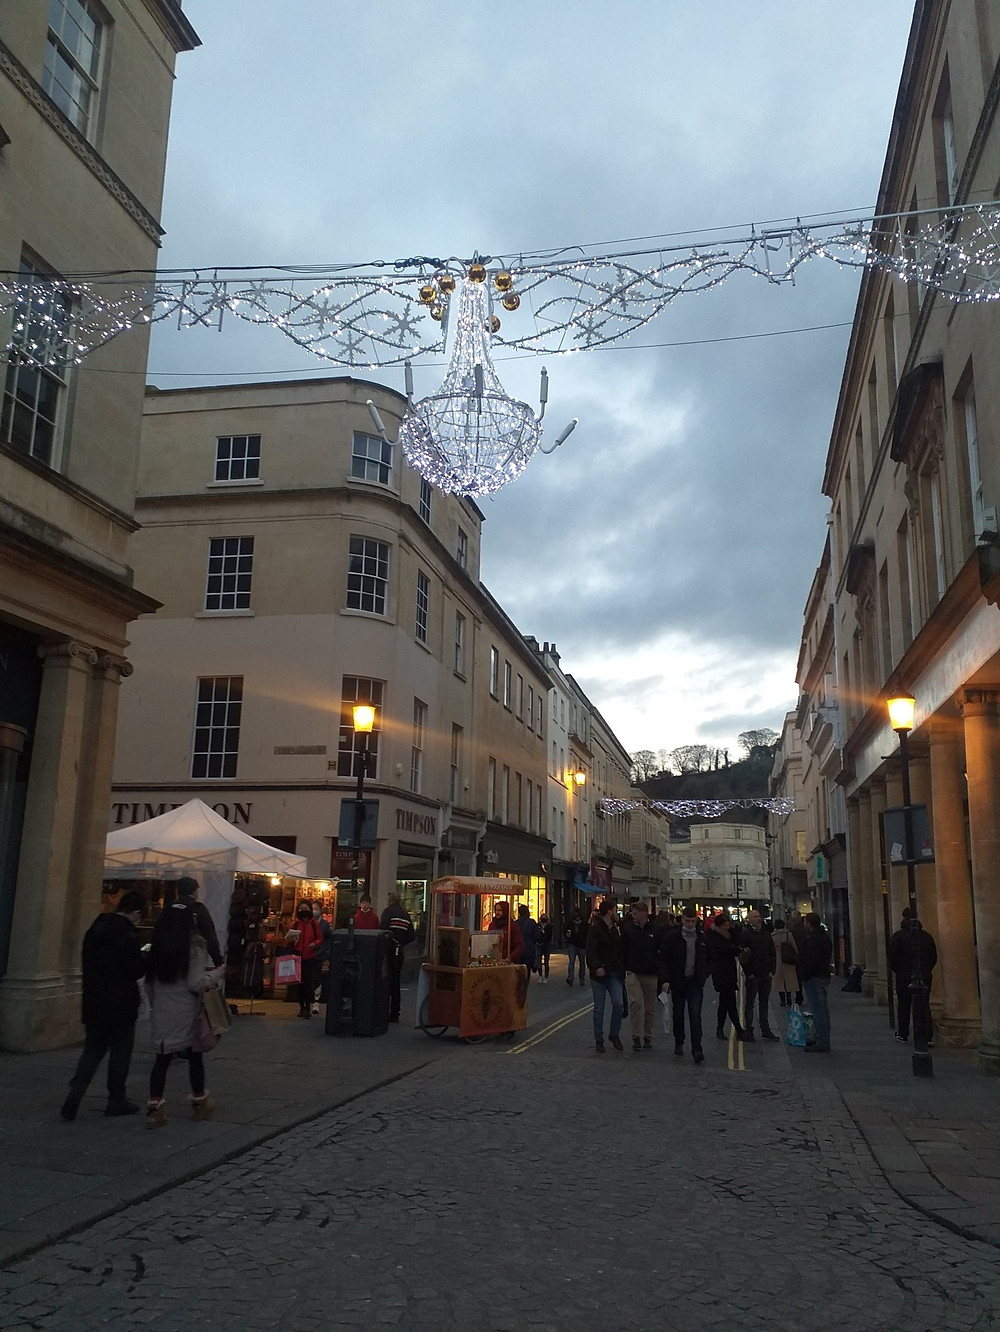 Streets decorated with Christmas lights